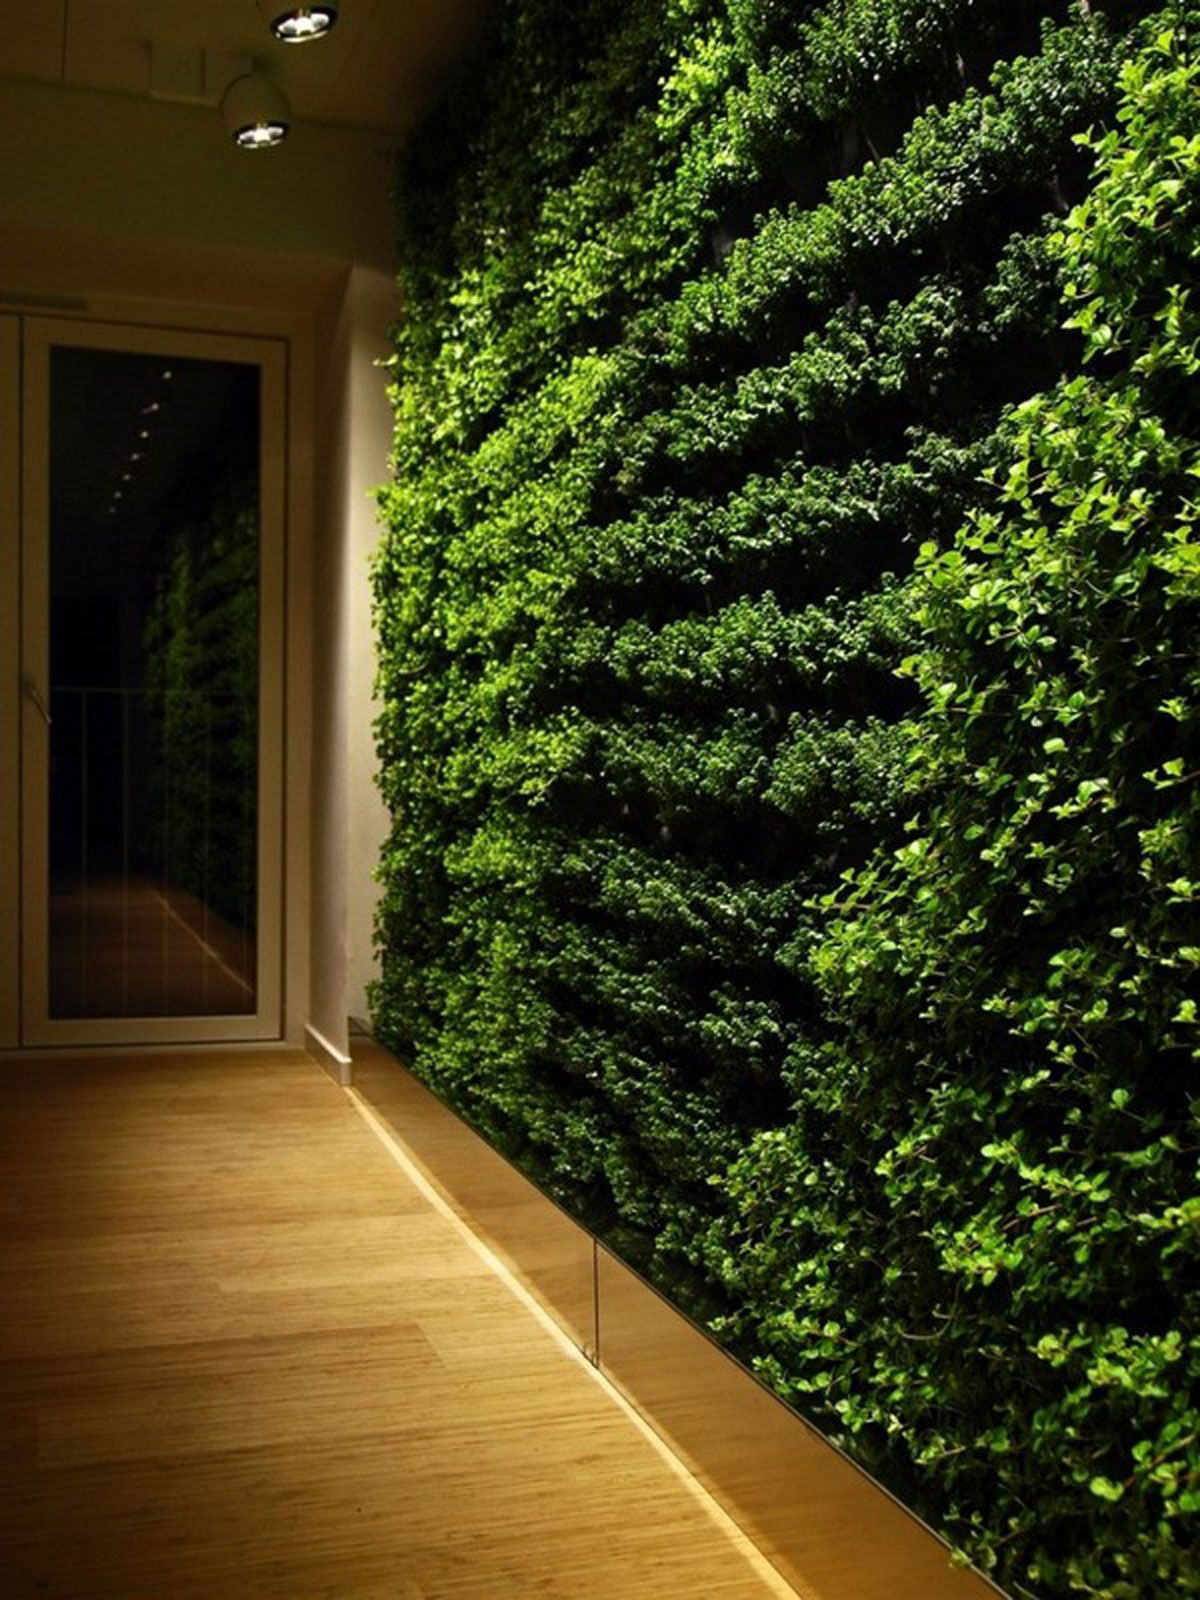 Green wall gardening system ask green design how they can help you with your own office green wall www greendesign com au